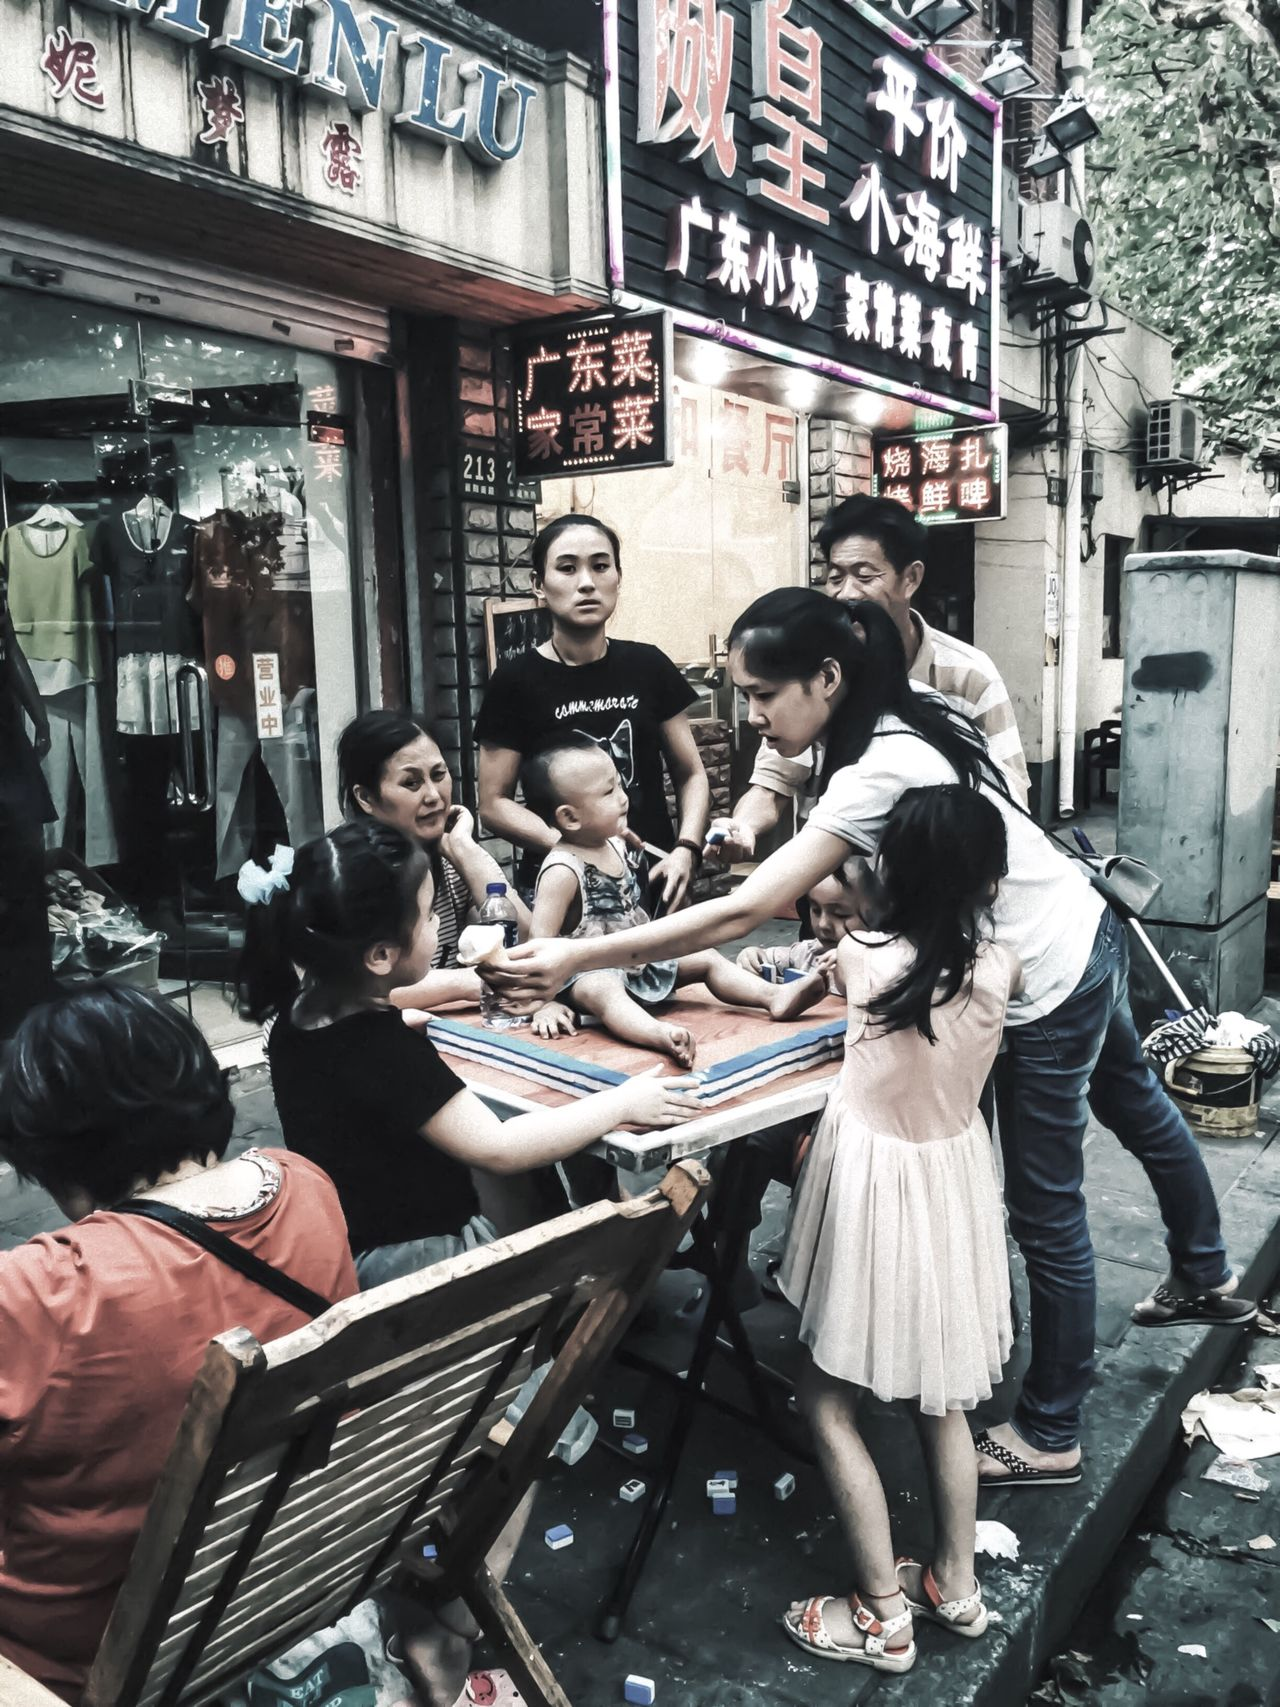 Shanghai street 01 Shanghai Streets My City My Street Photography Shanghai Photography Streetphotography Streetphotographer Love Shanghai Taking Photos Children Family City Street Shanghai Life Hanging Out IPhoneography Enjoying Life Looking At Camera